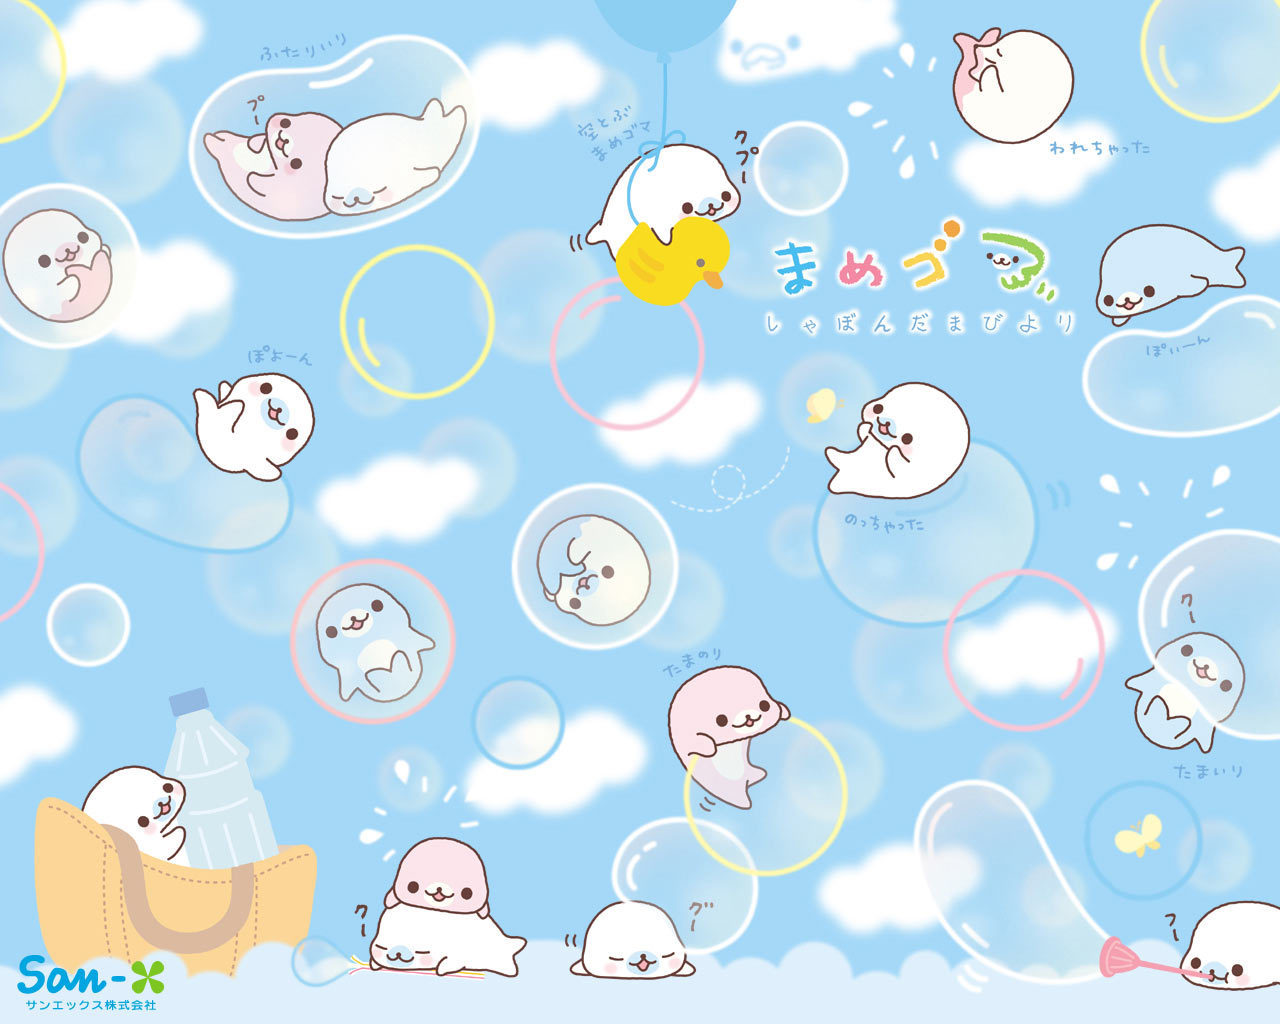 mamegoma images mamegoma bubble wallpaper hd wallpaper and